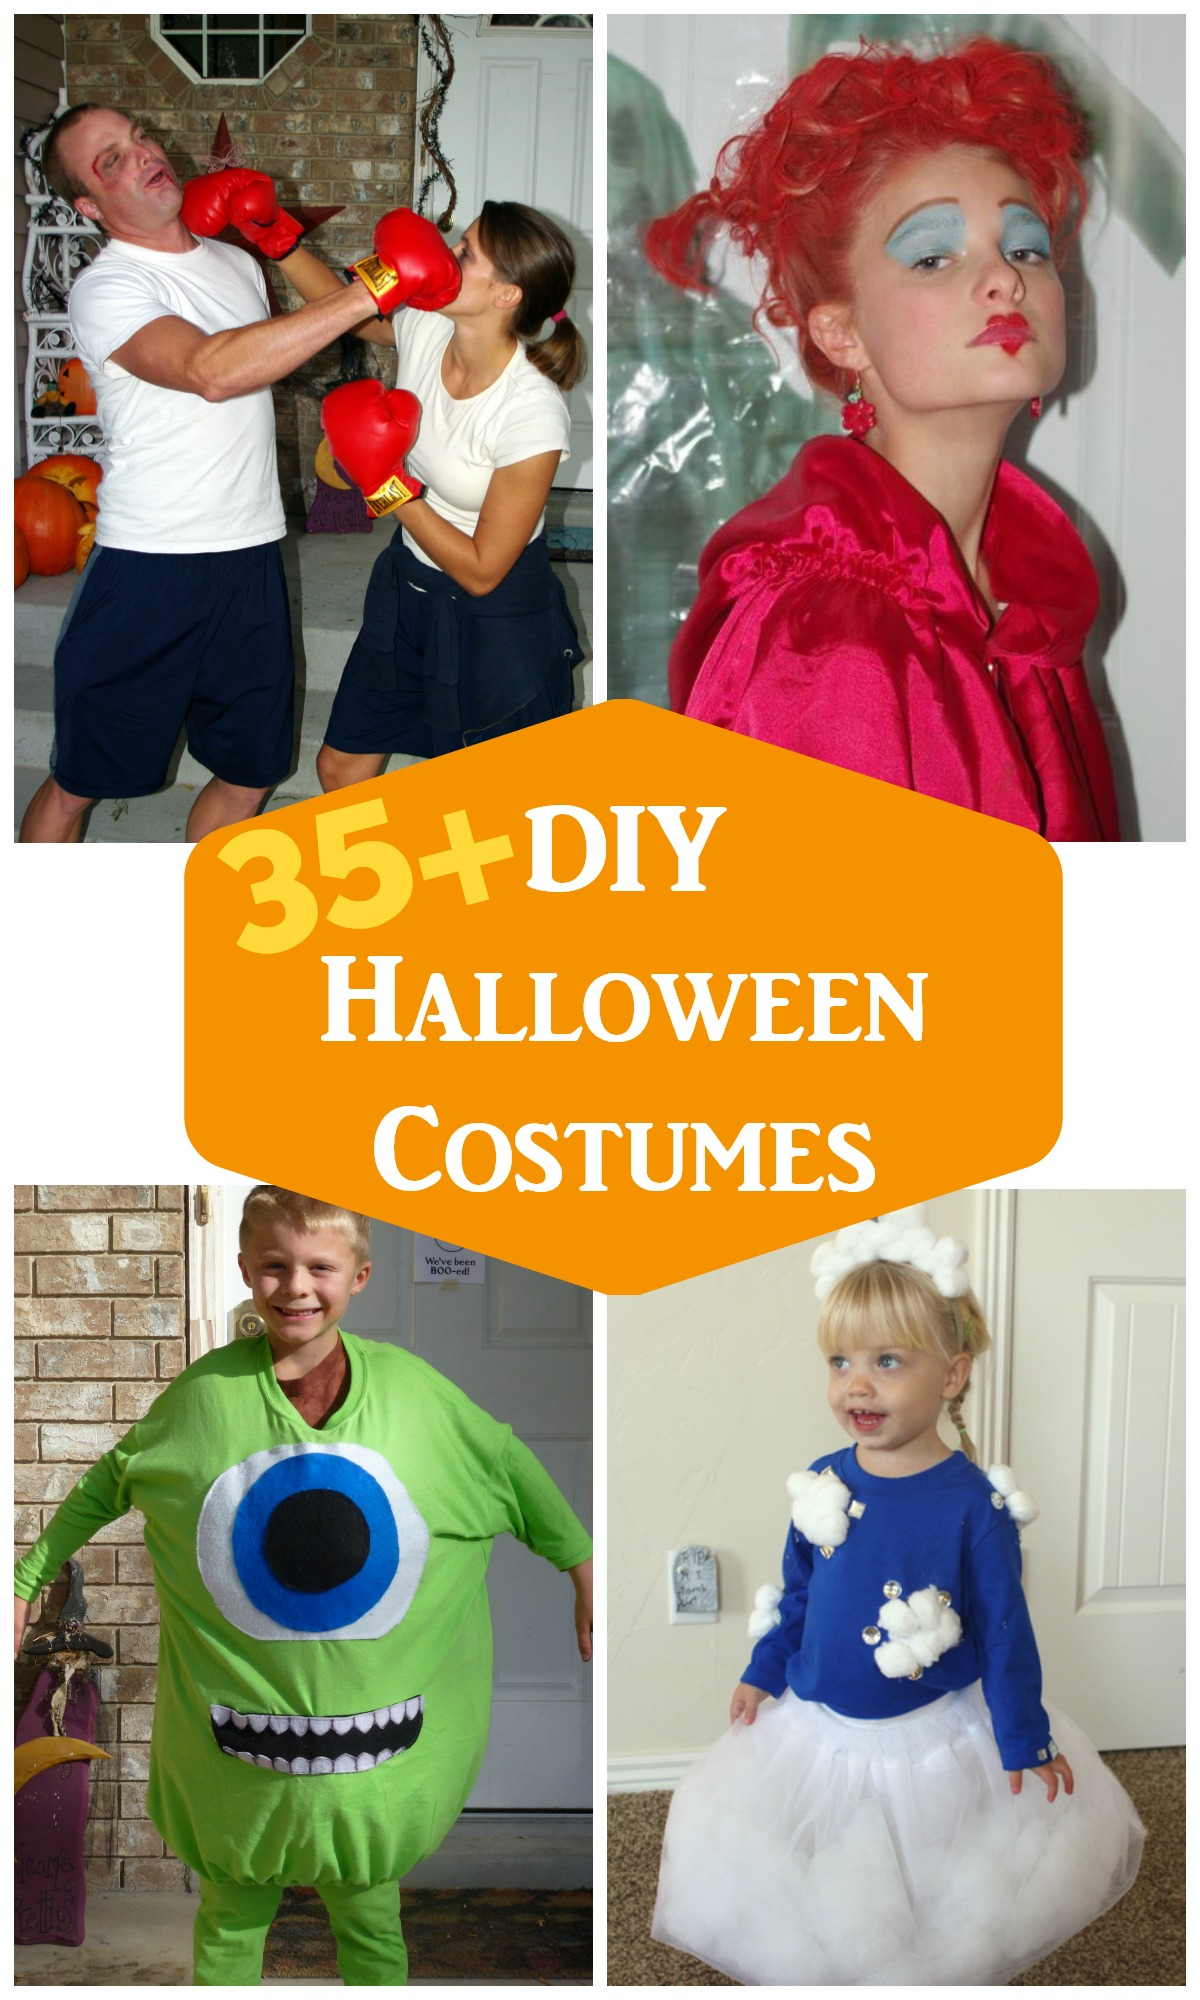 DIY Halloween Costumes u0026 DIY Halloween Costumes -35+ ideas from eventstocelebrate.net  sc 1 st  events to CELEBRATE! & halloween costume ideas Archives - events to CELEBRATE!